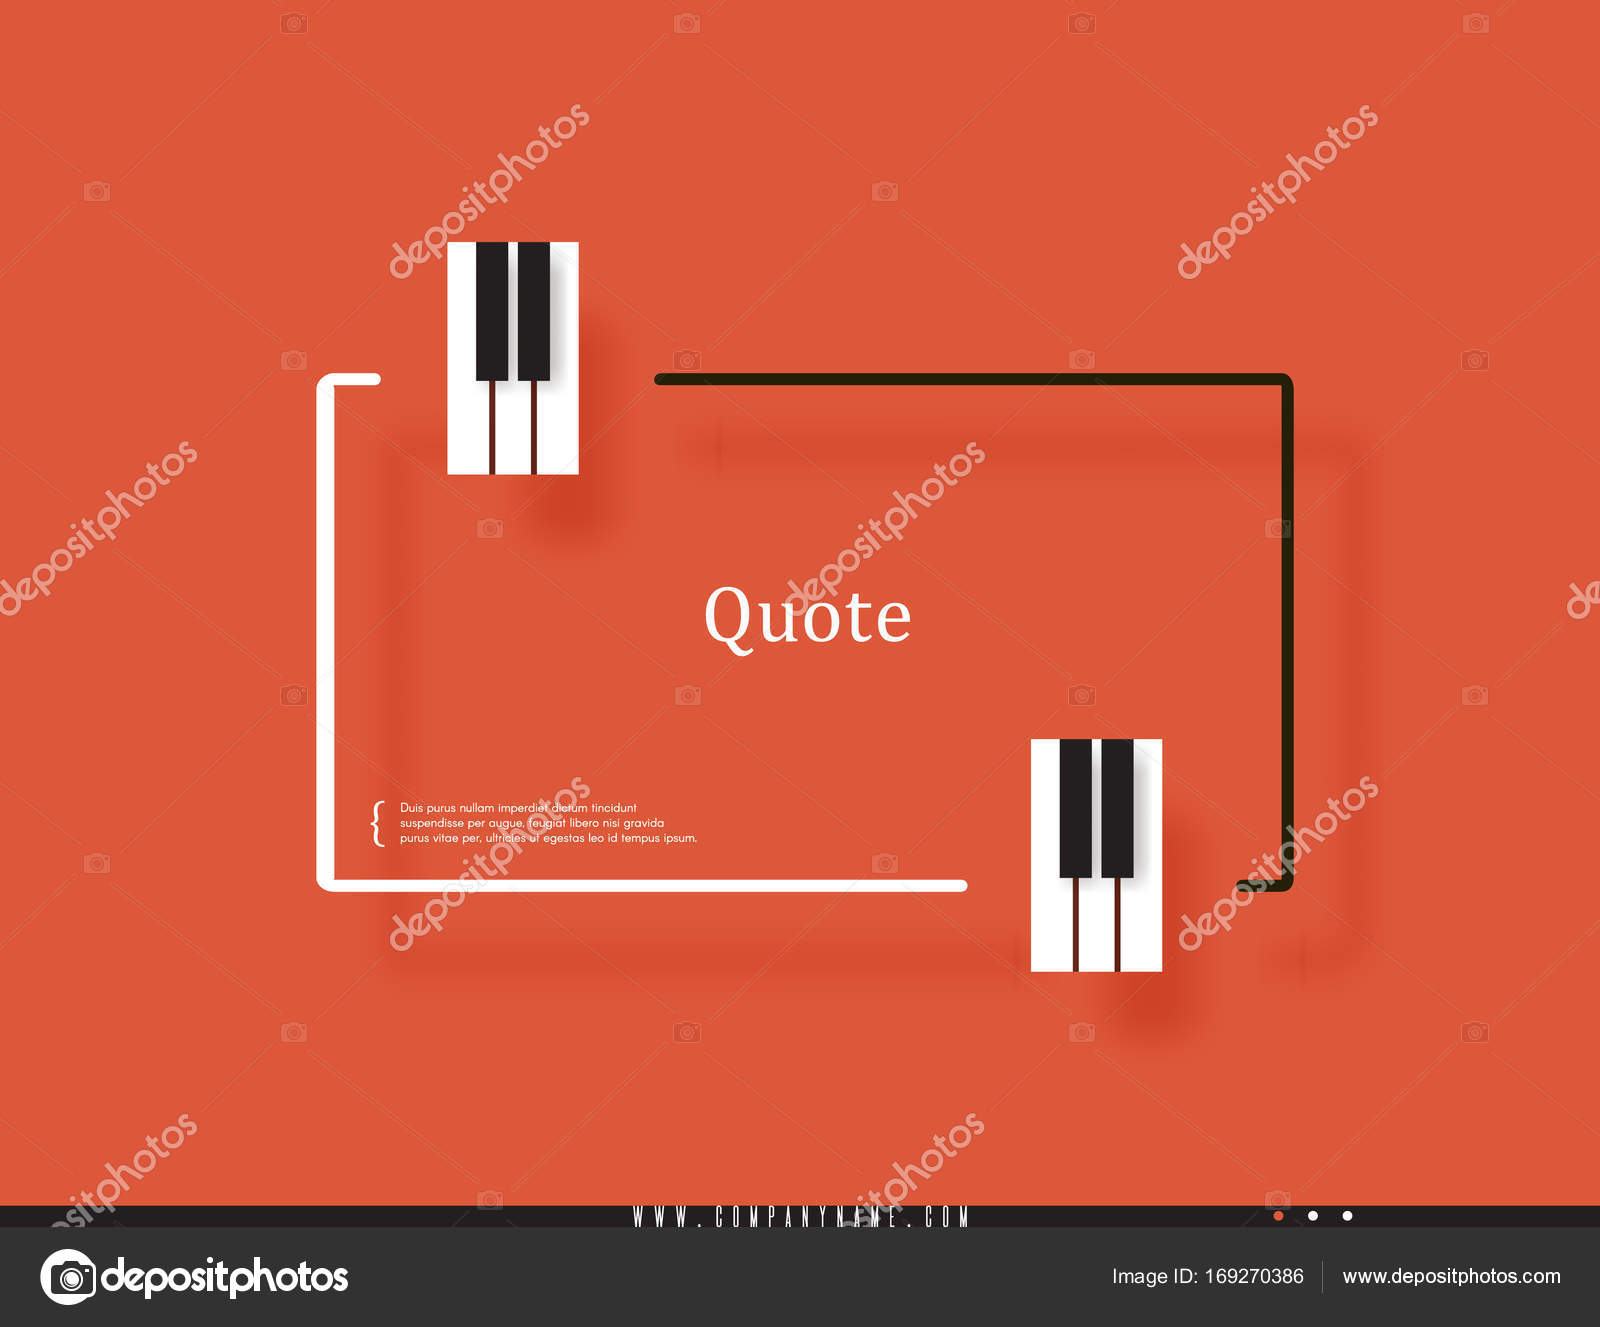 Musical Quote In A Frame Creative Quotation The Form Of Piano Keyboard Diagram Keys Element Modern Design Elements For Classical Music Isolated On Orange Background